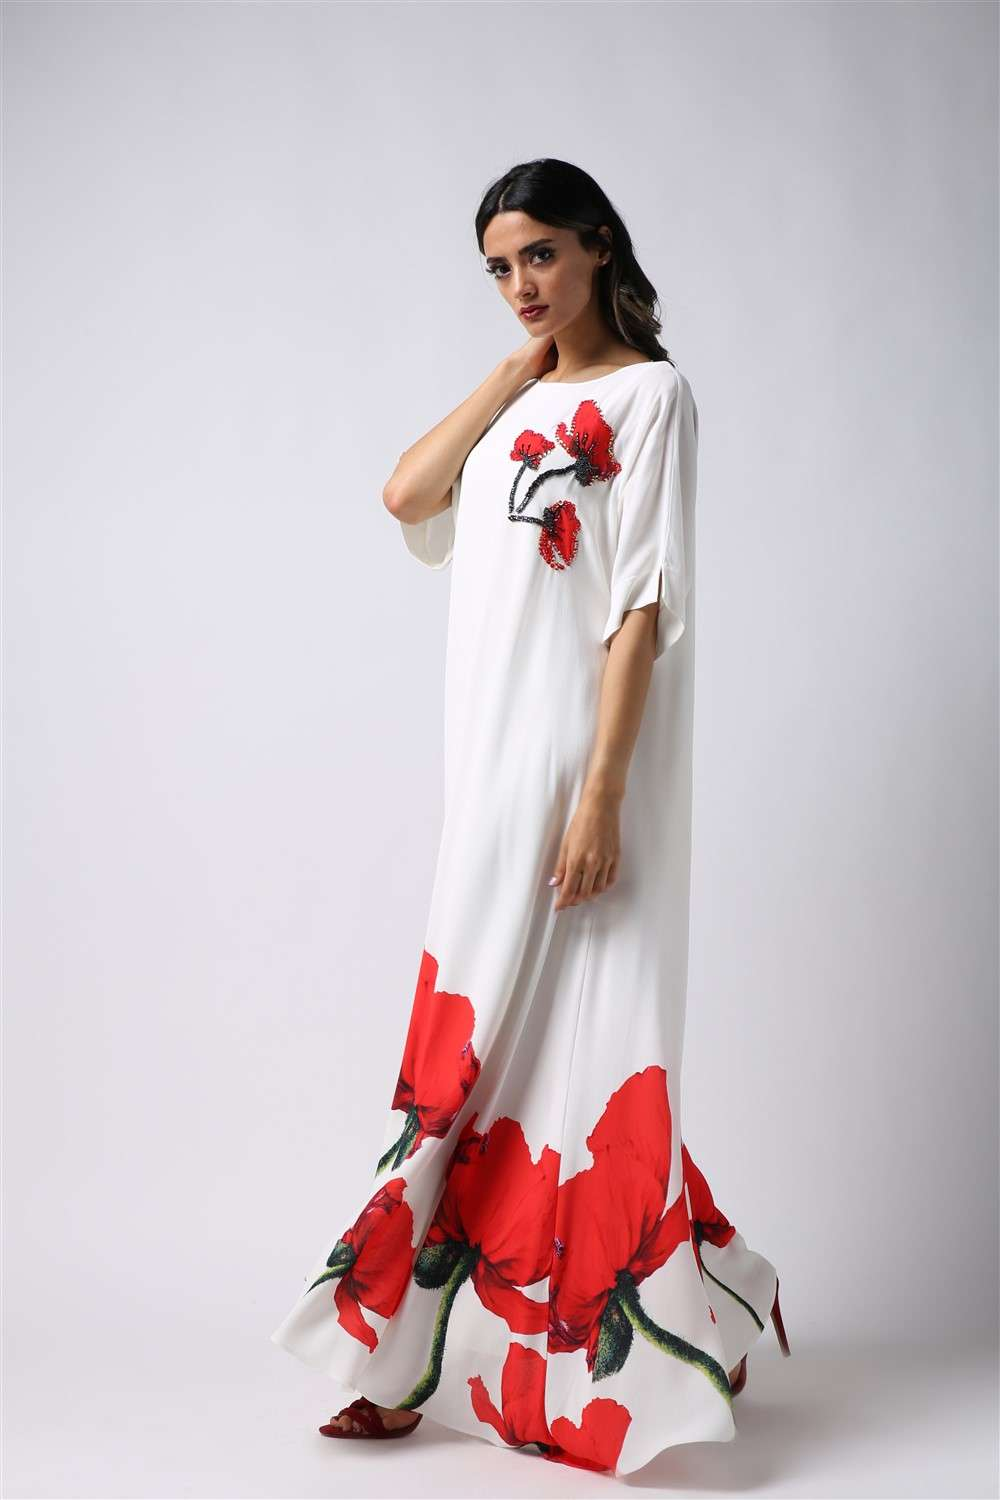 Nightgown - Red Tulip - Free Arm